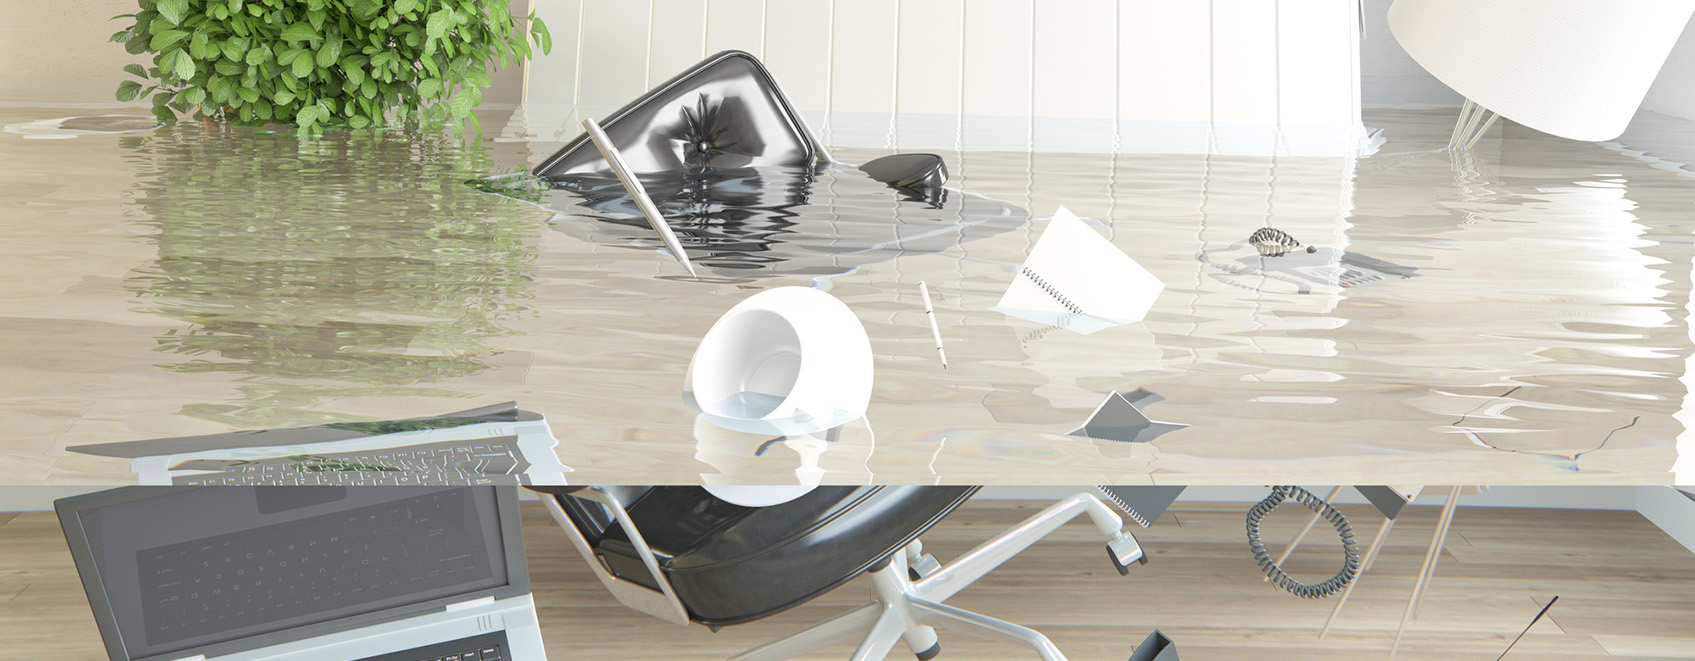 FLOOD INSURANCE FOR SMALL BUSINESSES